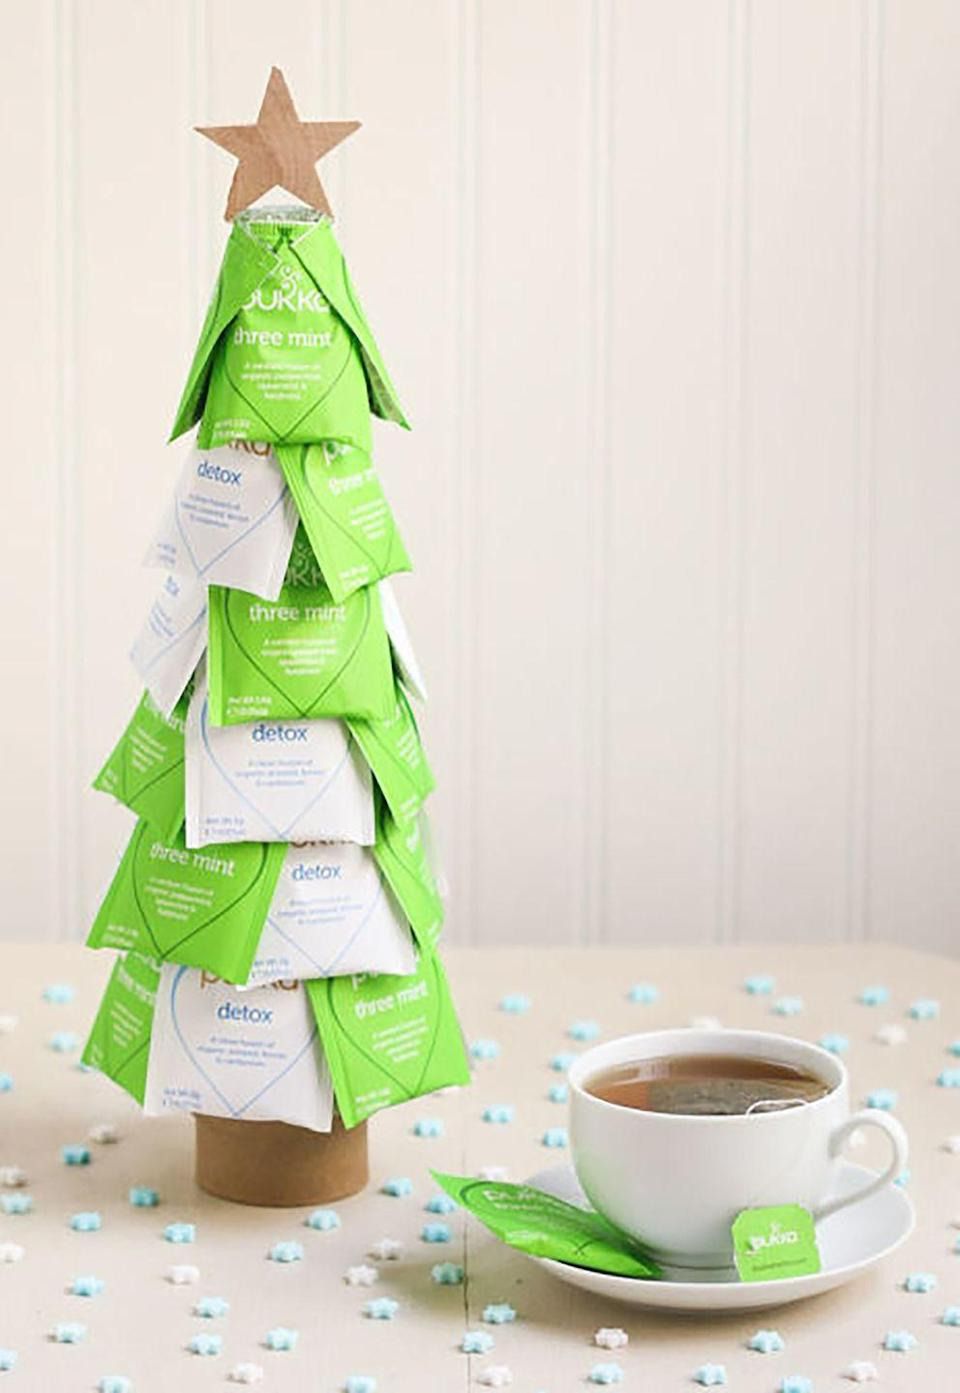 """<p>Arm yourself with a glue gun, some tea bags, and a styrofoam cone, and you've got yourself the perfect gift for the tea-lover in your life.</p><p><strong>Get the tutorial at <a href=""""http://www.thirstyfortea.com/2014/12/19/christmas-tea-trees/"""" rel=""""nofollow noopener"""" target=""""_blank"""" data-ylk=""""slk:Thirsty for Tea"""" class=""""link rapid-noclick-resp"""">Thirsty for Tea</a>.</strong></p><p><strong><a class=""""link rapid-noclick-resp"""" href=""""https://www.amazon.com/s/ref=nb_sb_noss_2?url=search-alias%3Daps&field-keywords=foam+cone&tag=syn-yahoo-20&ascsubtag=%5Bartid%7C10050.g.645%5Bsrc%7Cyahoo-us"""" rel=""""nofollow noopener"""" target=""""_blank"""" data-ylk=""""slk:SHOP FOAM CONE"""">SHOP FOAM CONE</a><br></strong></p>"""